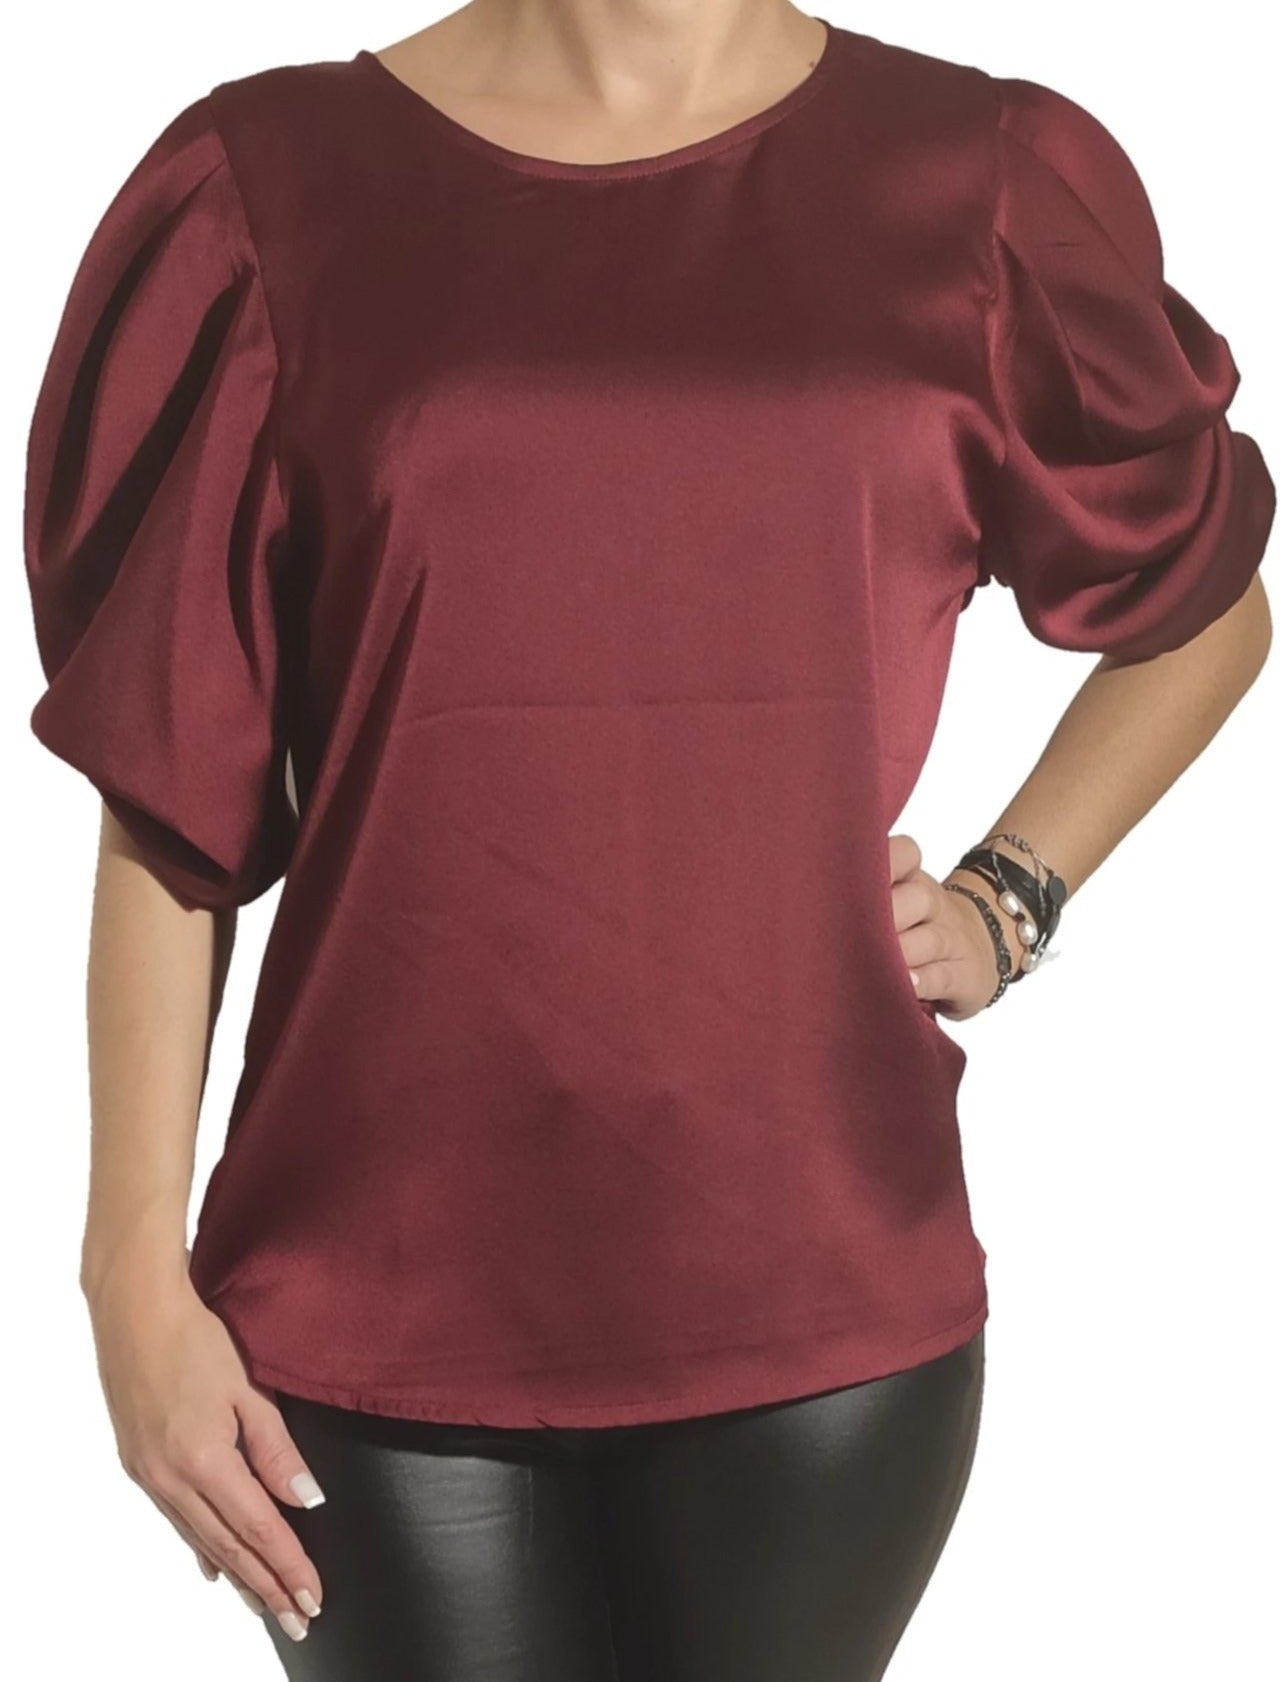 a-woman-wears-a-bordeaux-blouse-front-side